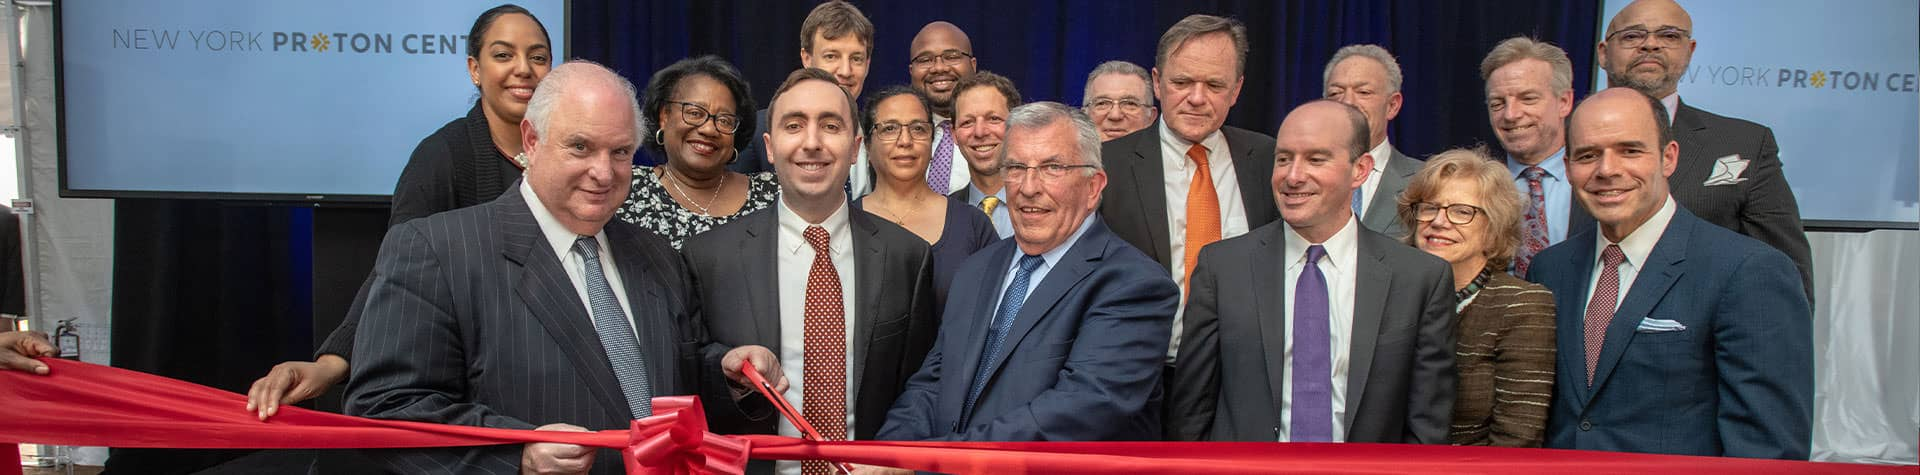 NY Proton Center team cutting ribbon